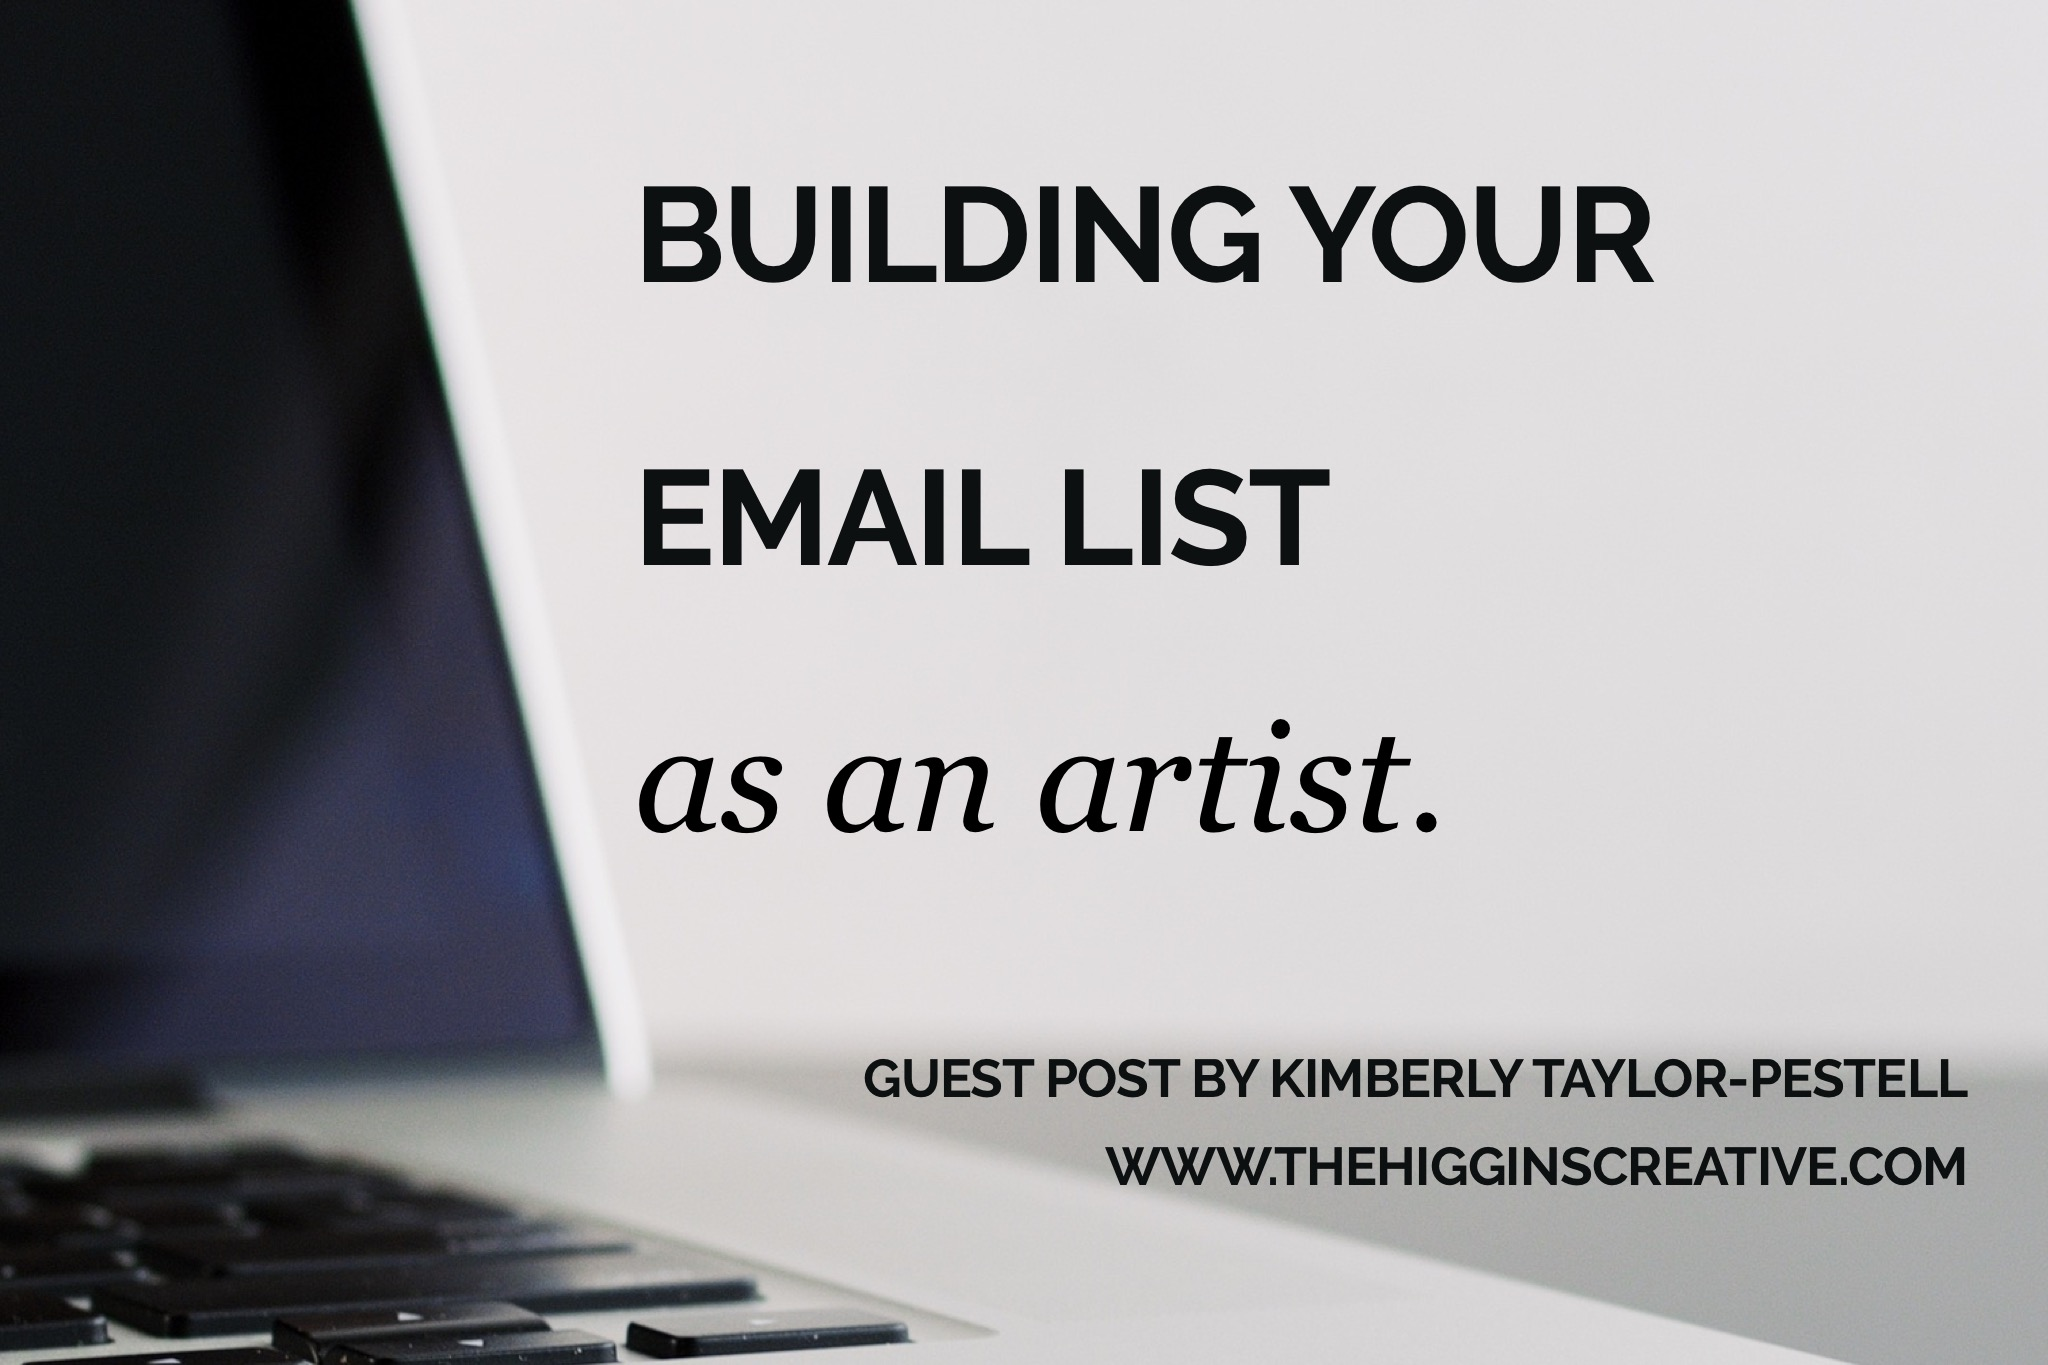 As an artist, blogger and letter-writing enthusiast, communicating in meaningful ways is at the forefront of my mind when engaging in person, over social media or through email. Find out how to build and grow your email list as a maker and artist. For small businesses and boss babes trying to market their art online.